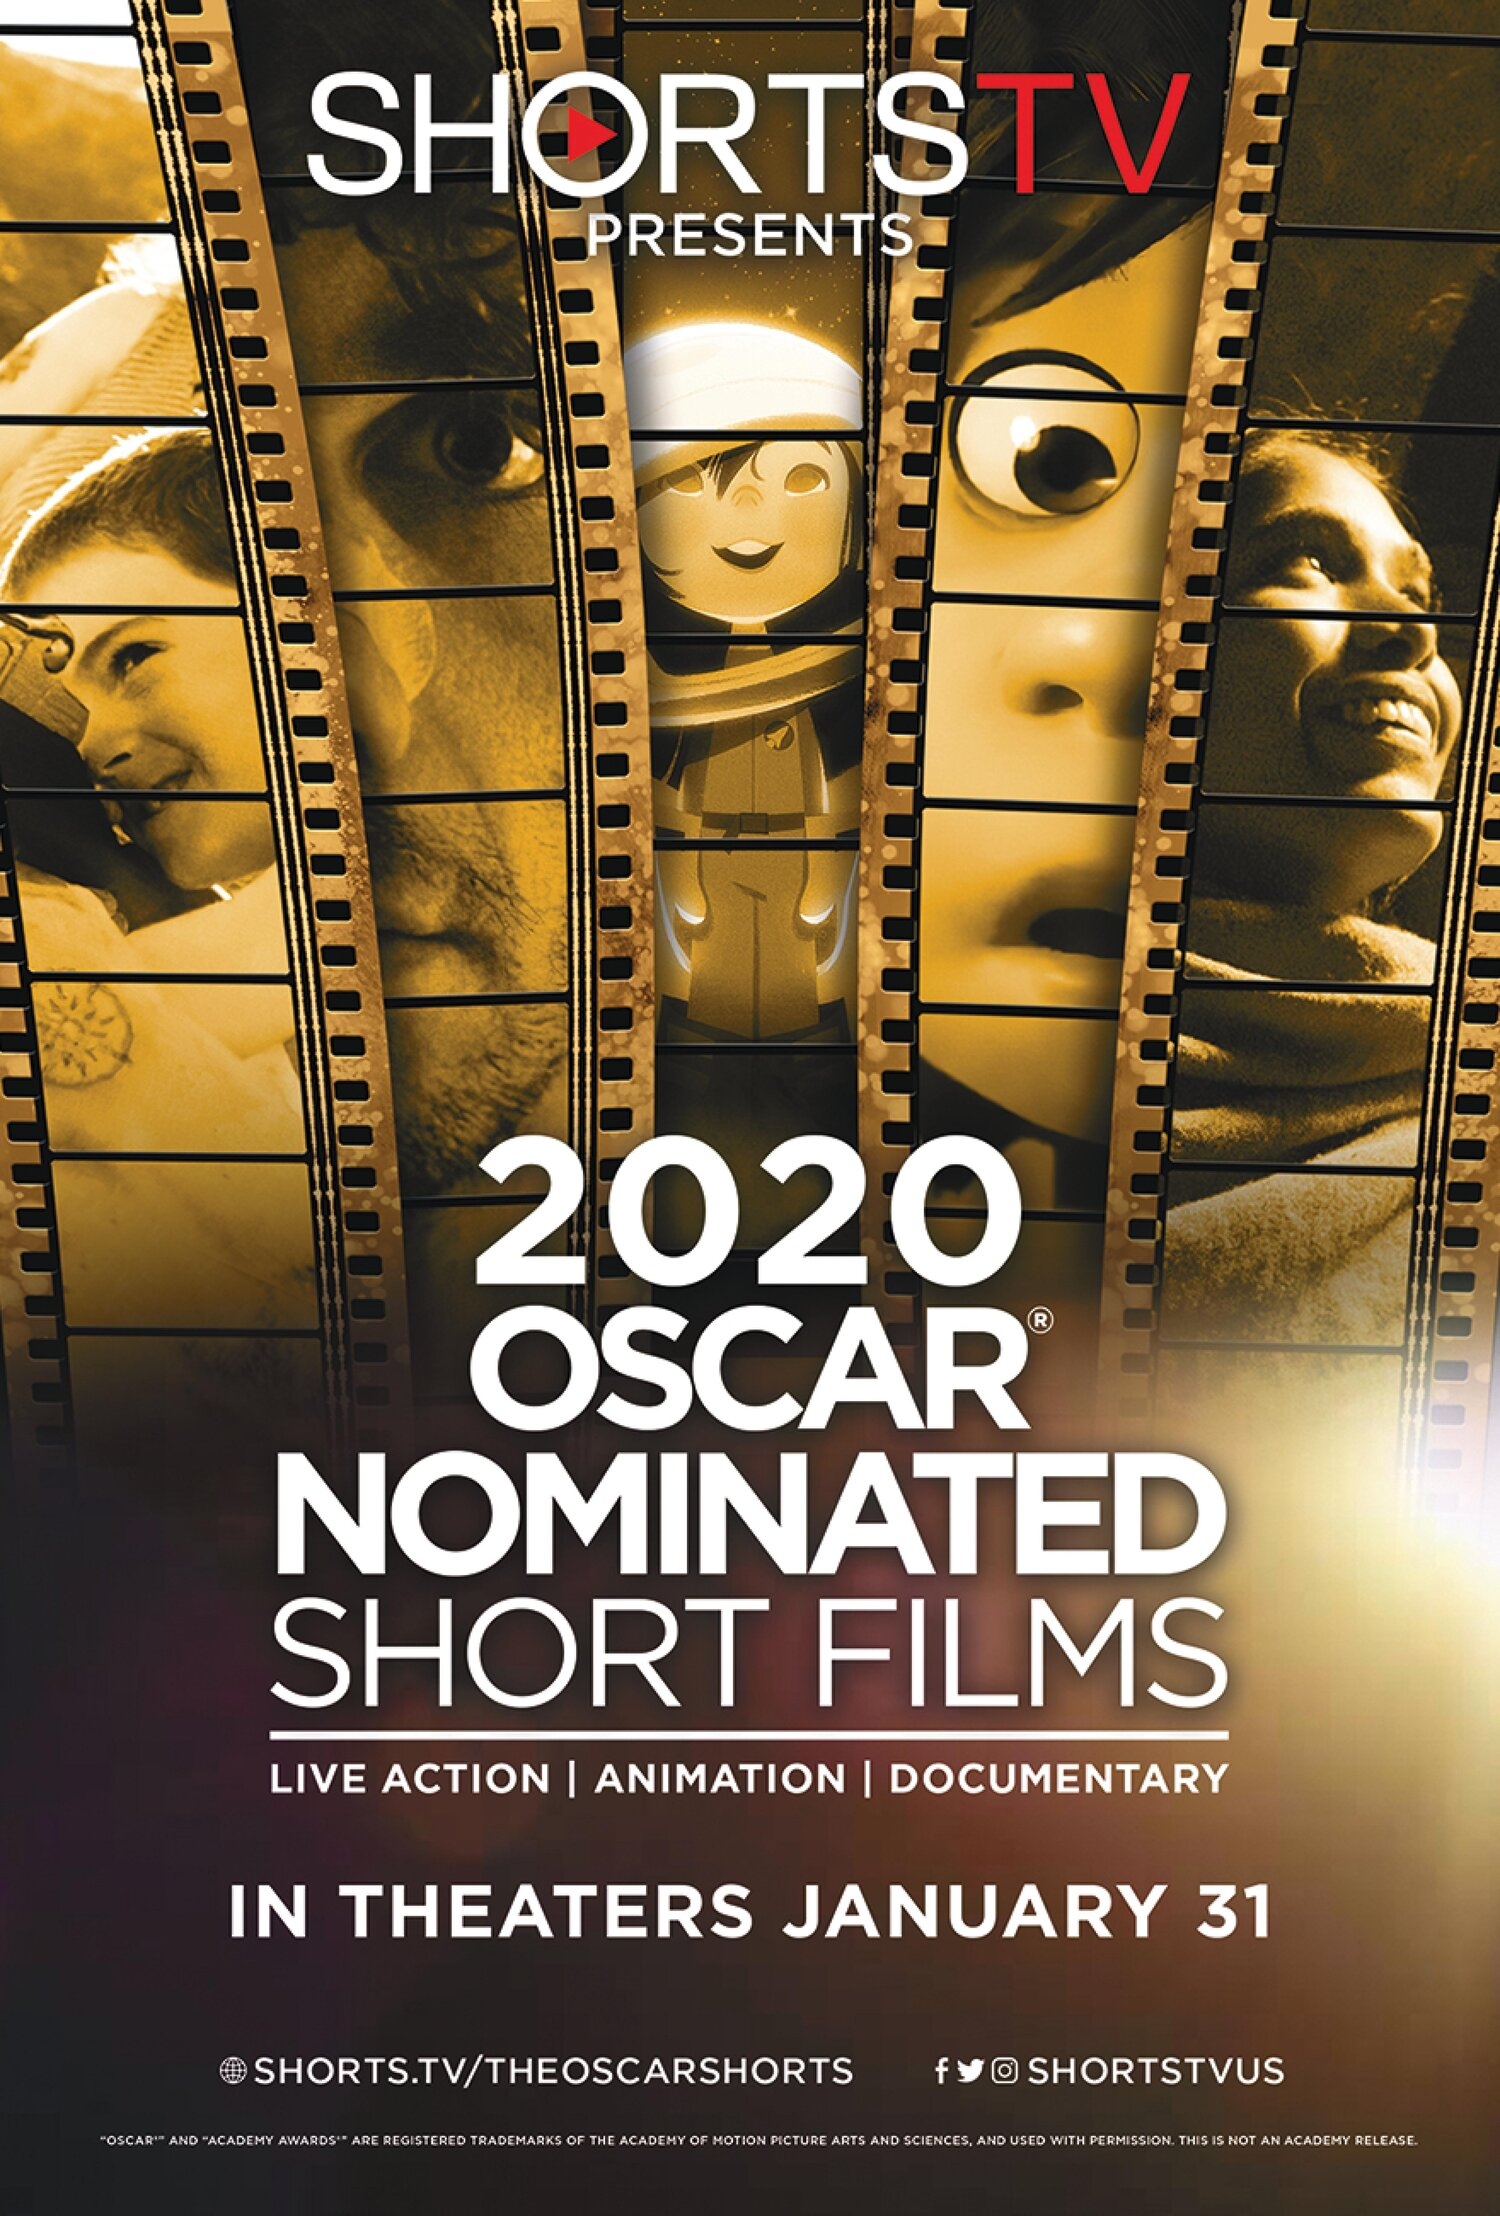 Poster for 2020 Oscar Nominated Live Action Shorts